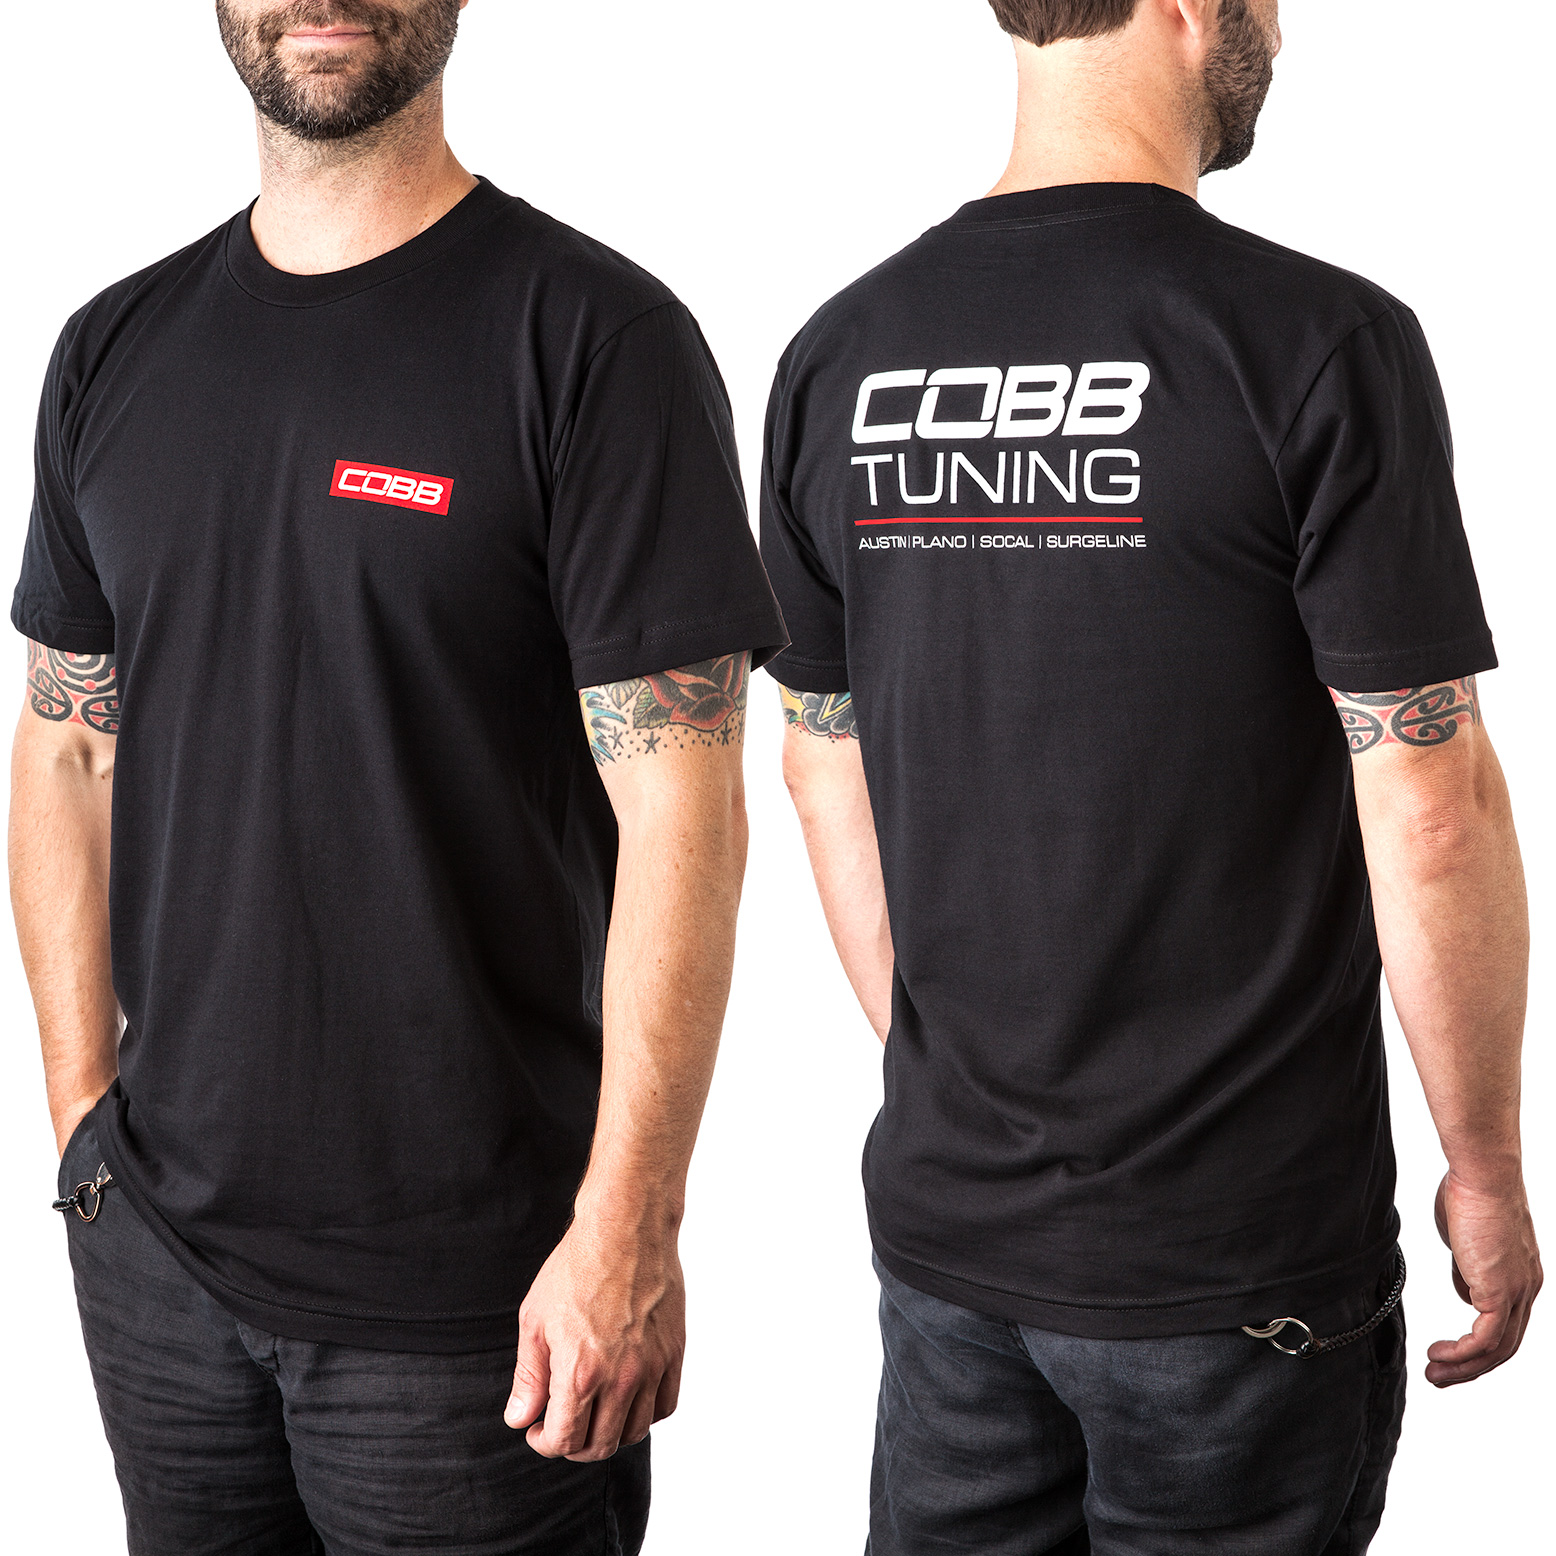 COBB Tuning Shops T-Shirt - Men's Black